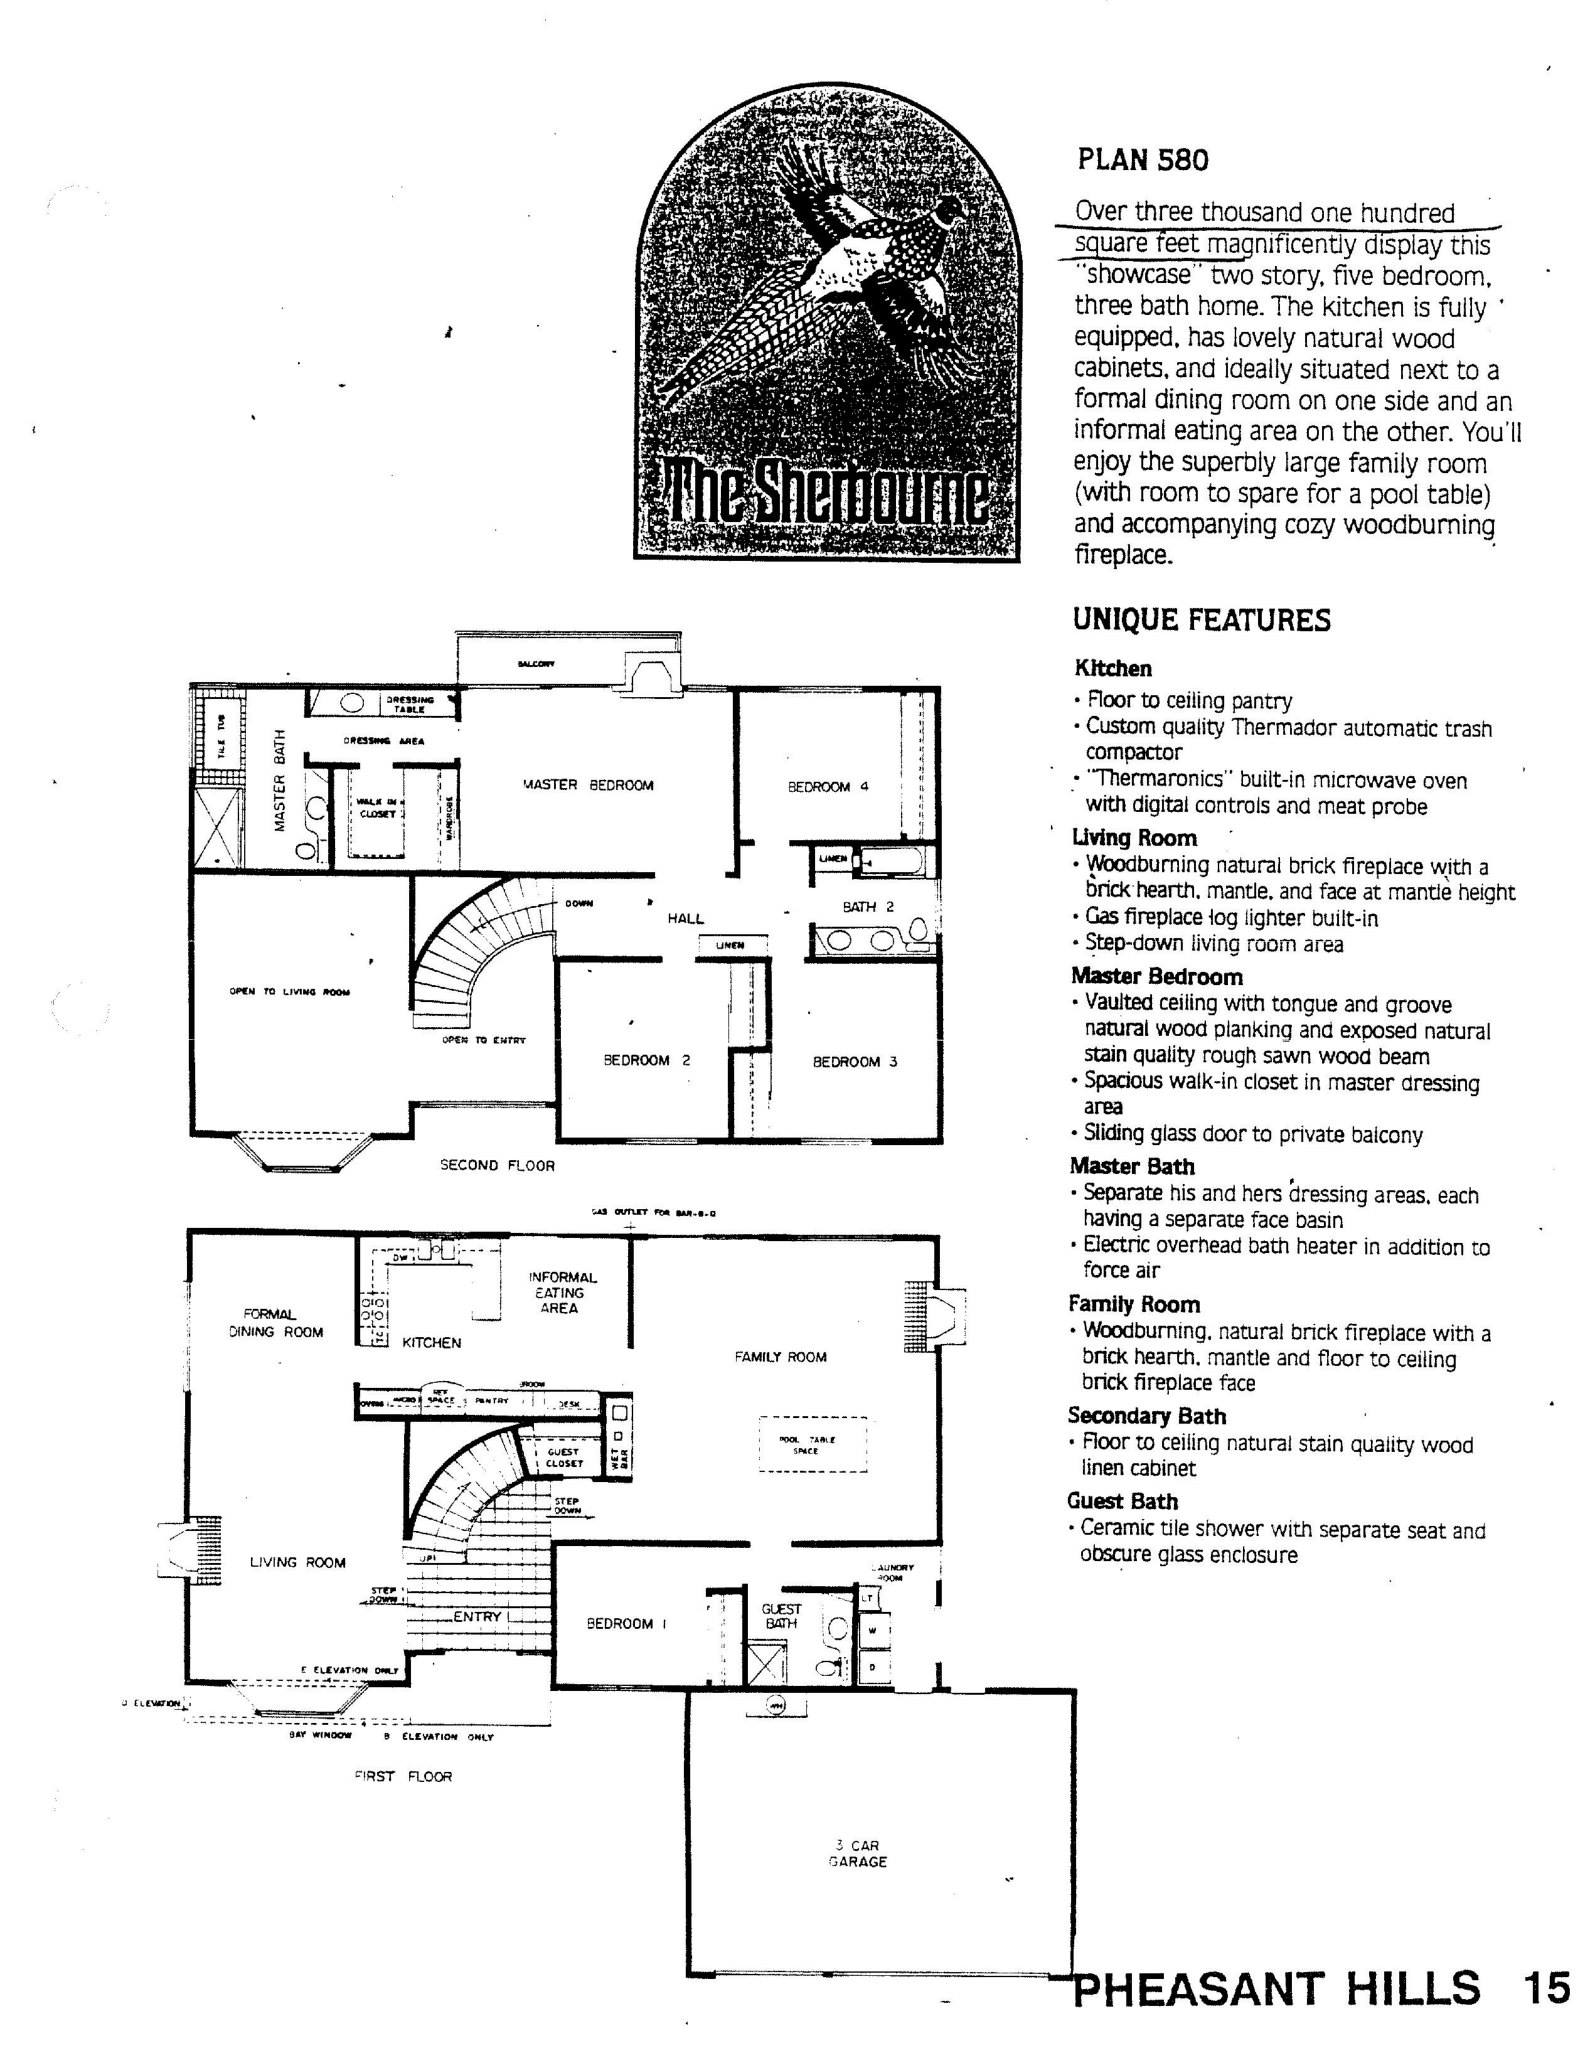 Pheasant Hills - The Sherbourne - Plan 580